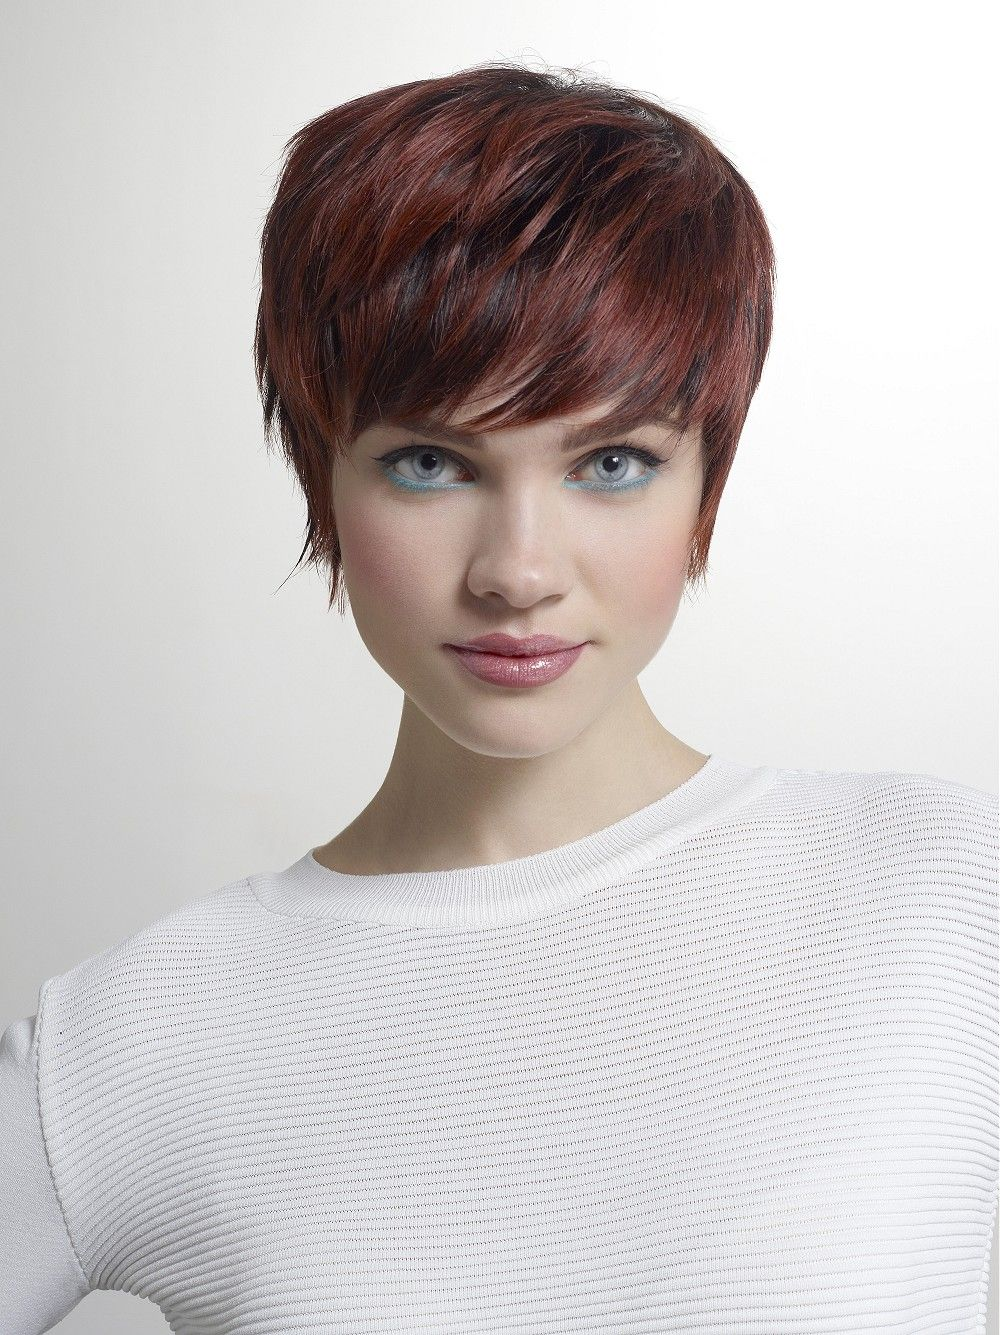 Large Image Of Short Brown Straight Hairstyles Provided By Tchip Coiffure Picture Number 23160 Brown Straight Hair Short Hair Styles Medium Hair Styles